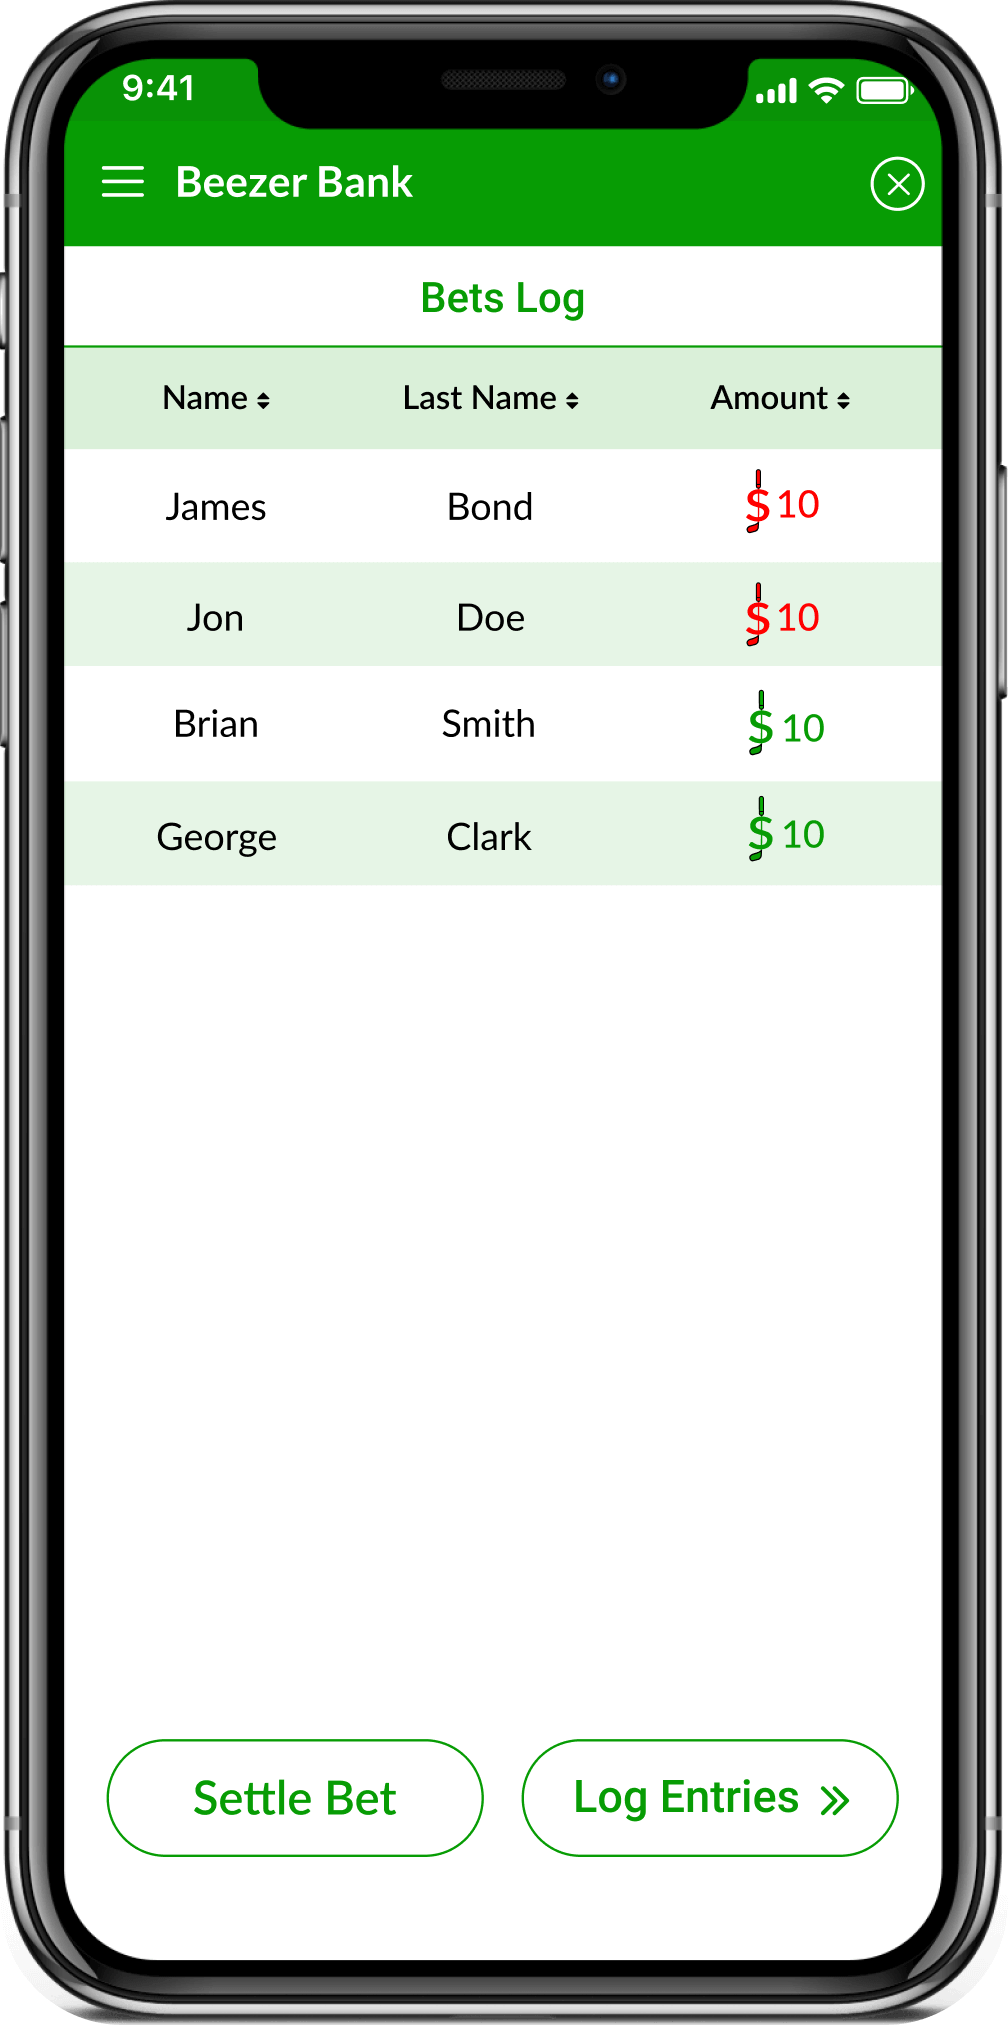 Golf Bets Tracking App screenshot showing the bets log